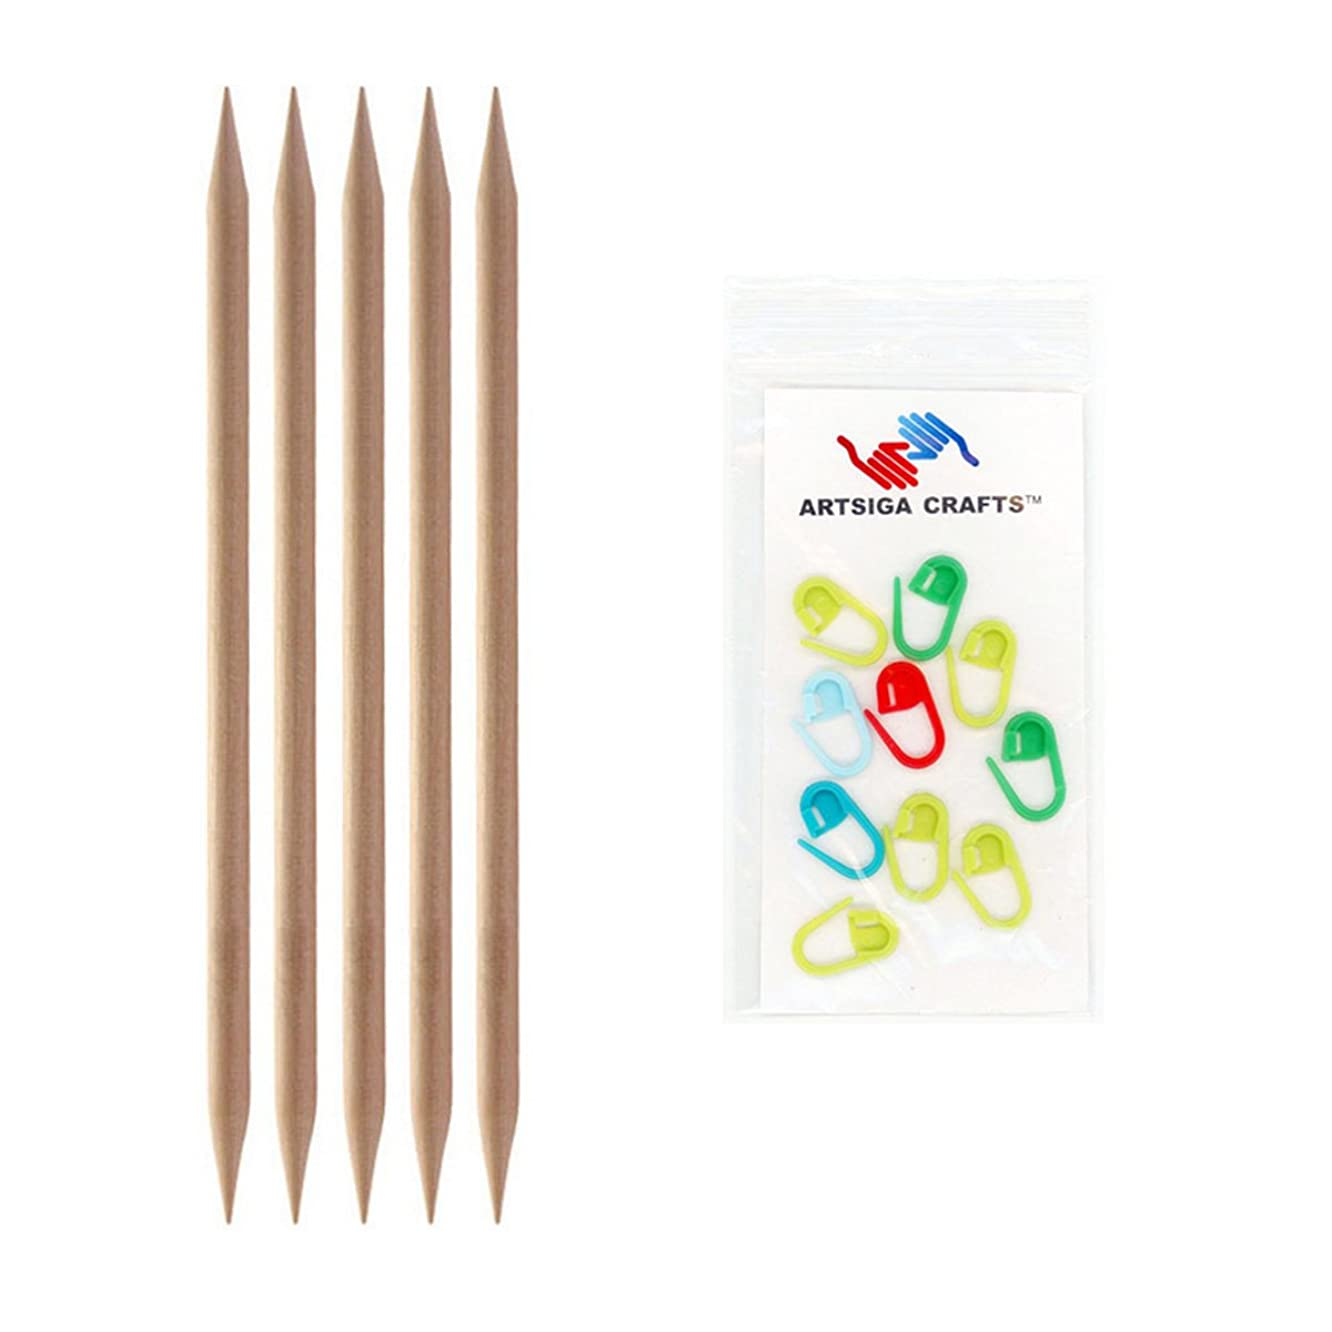 Knitter's Pride Basix Double Pointed 8-inch (20cm) Knitting Needles; Size US 11 (8.0mm) Bundle with 10 Artsiga Crafts Stitch Markers 400101